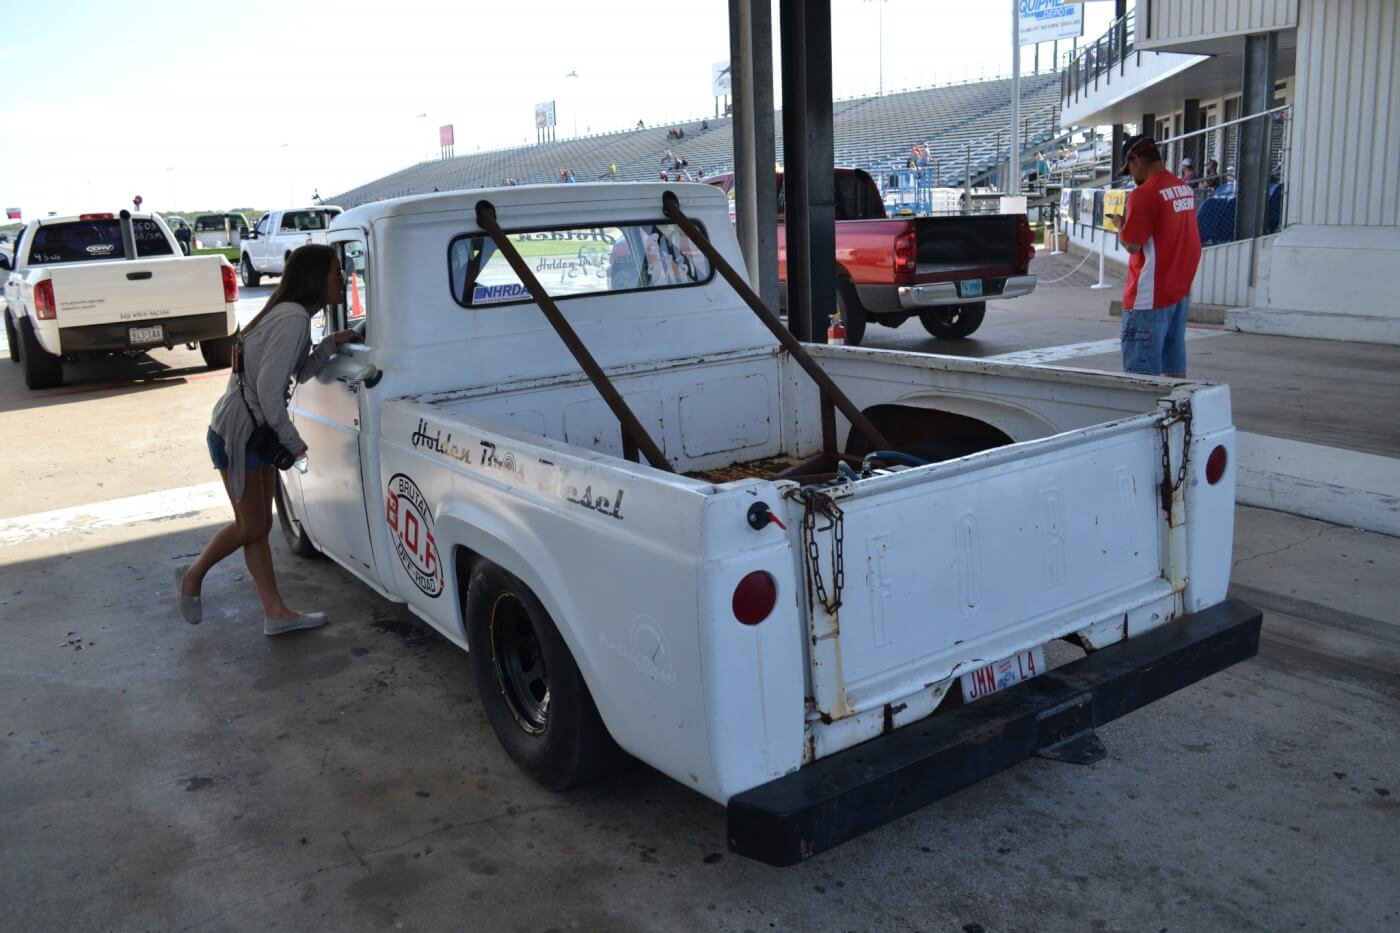 In the Sportsman bracket class, virtually anything and everything could be seen headed down the strip, like this cool old Cummins-powered Ford.